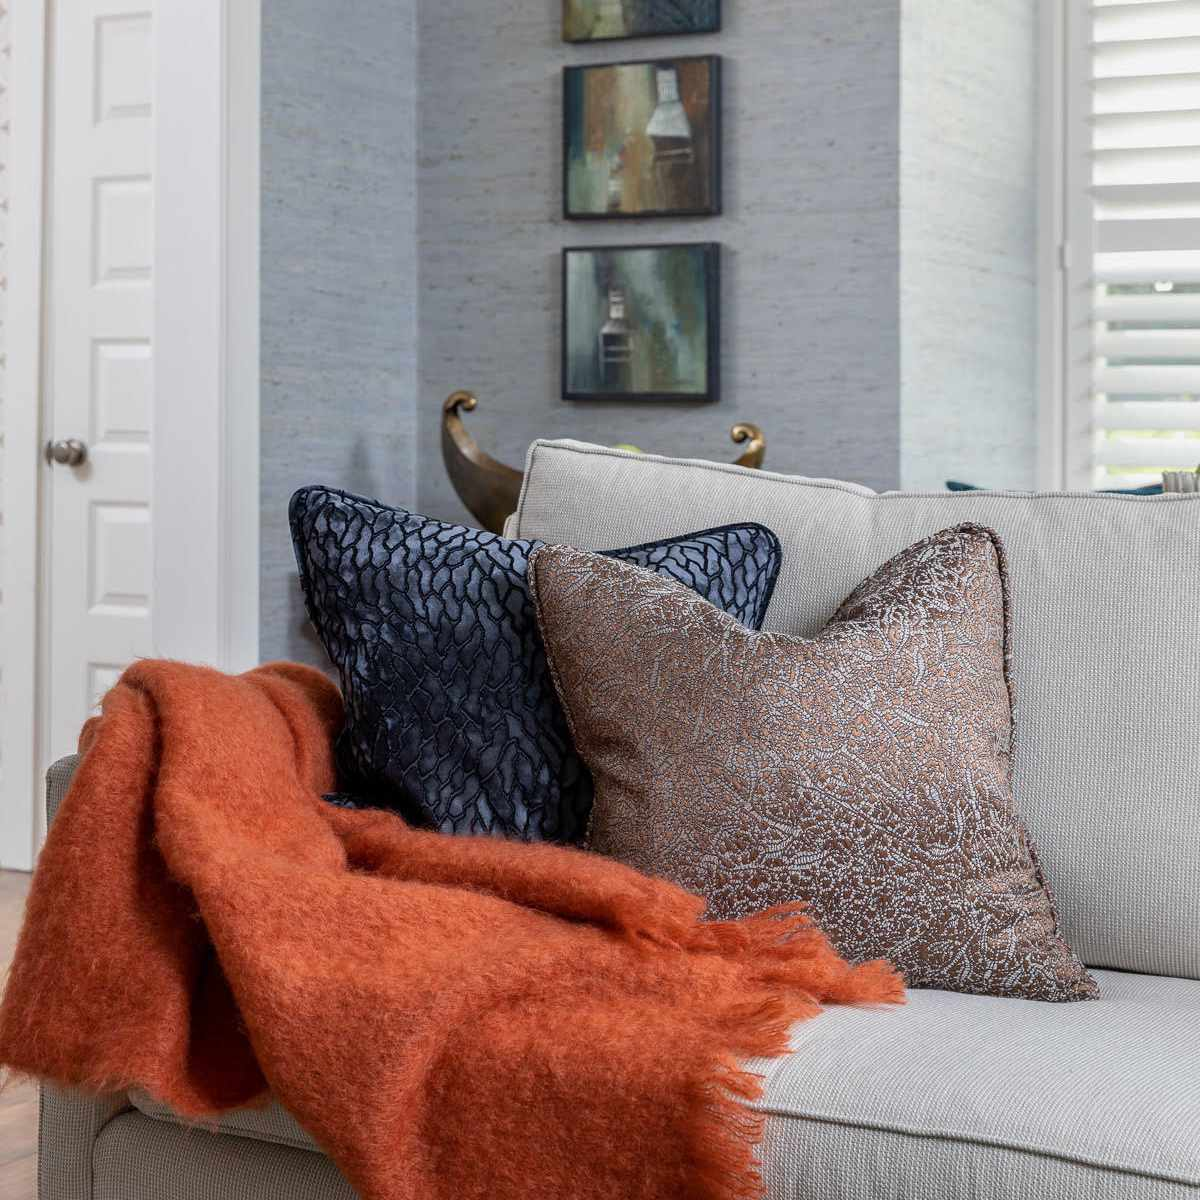 a living area with fall decor features a cozy orange throw blanket